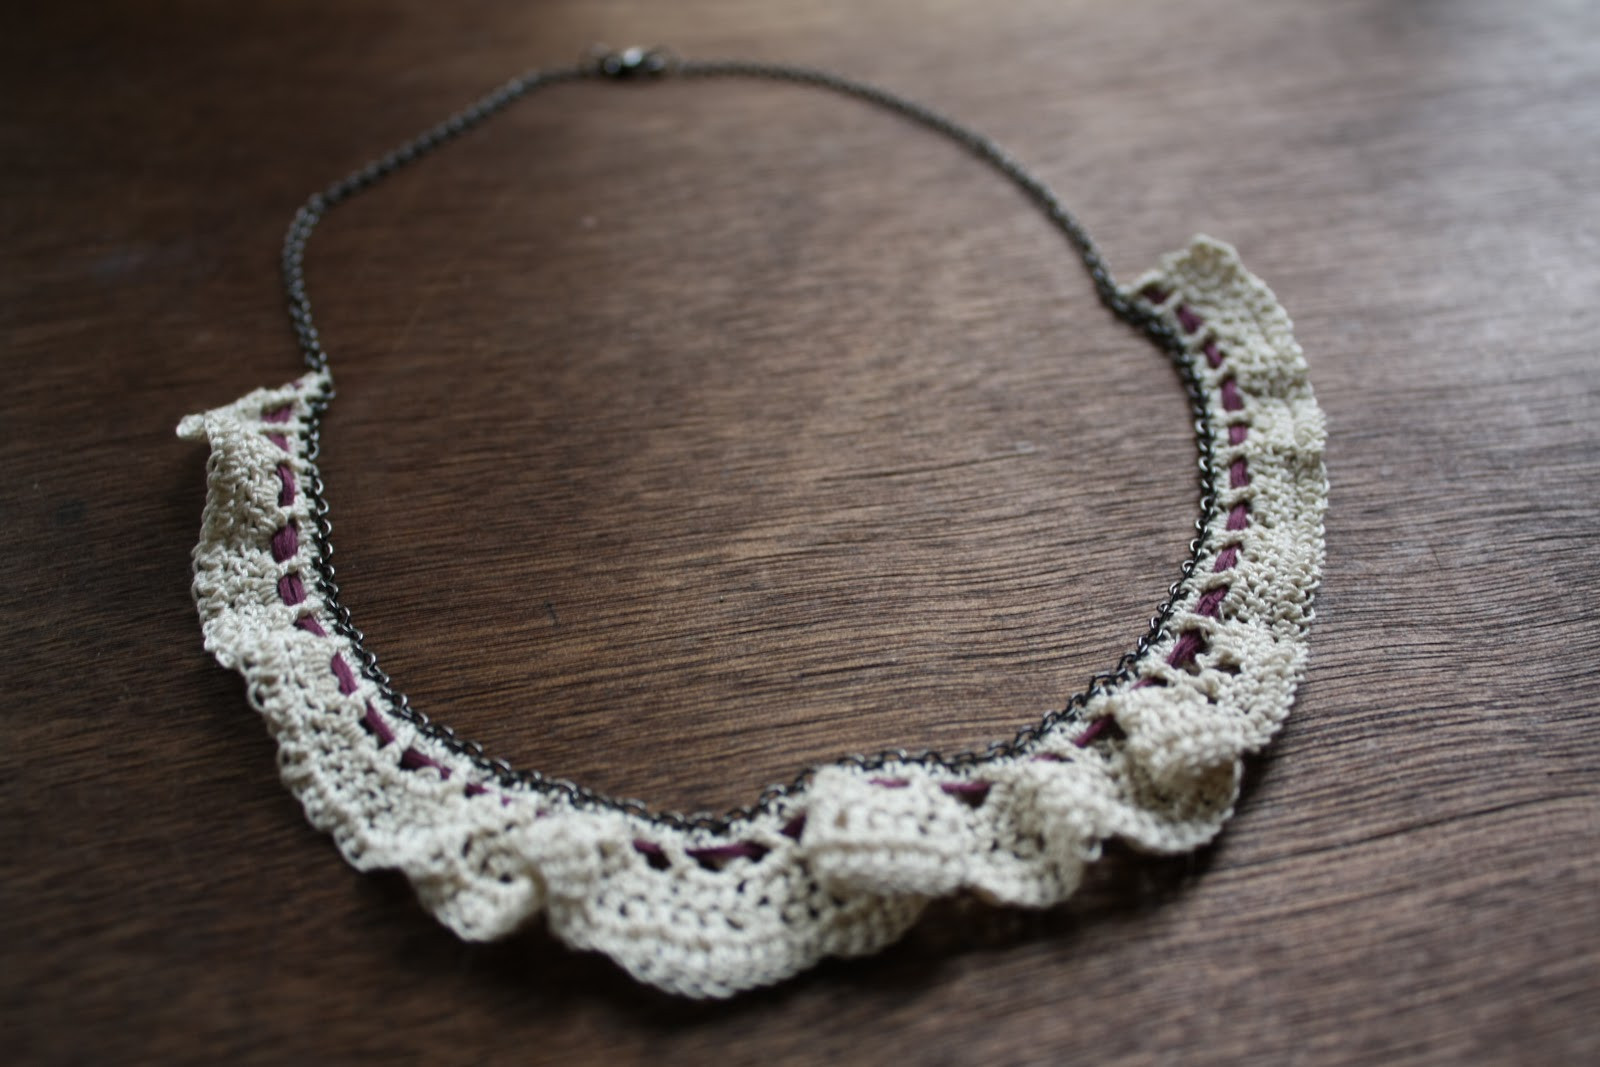 Crochet Necklace Chain Best Of Lock and Spoon Crochet Necklaces Of Charming 44 Ideas Crochet Necklace Chain